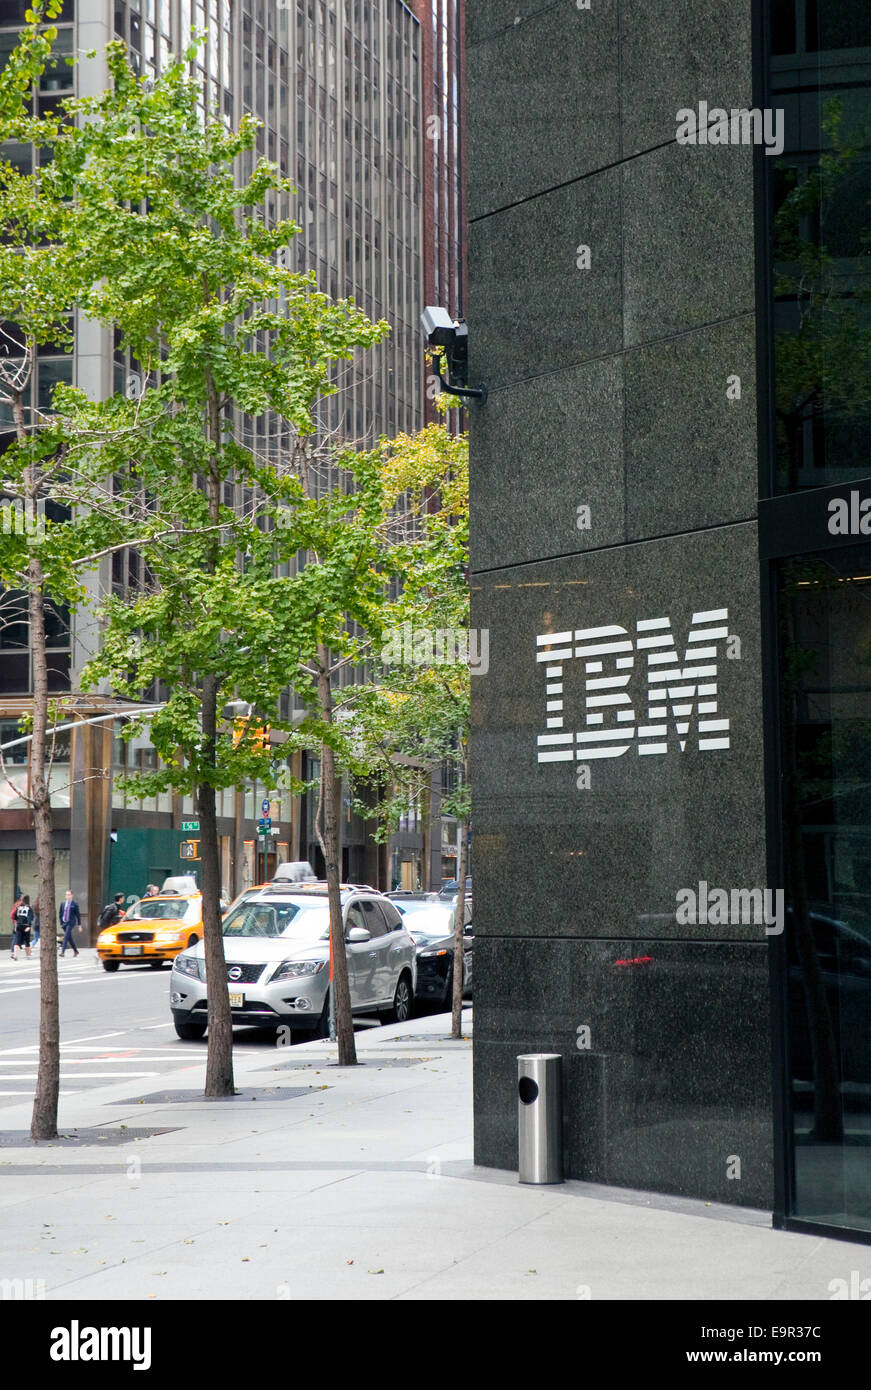 A view of IBM's building in New York - Stock Image